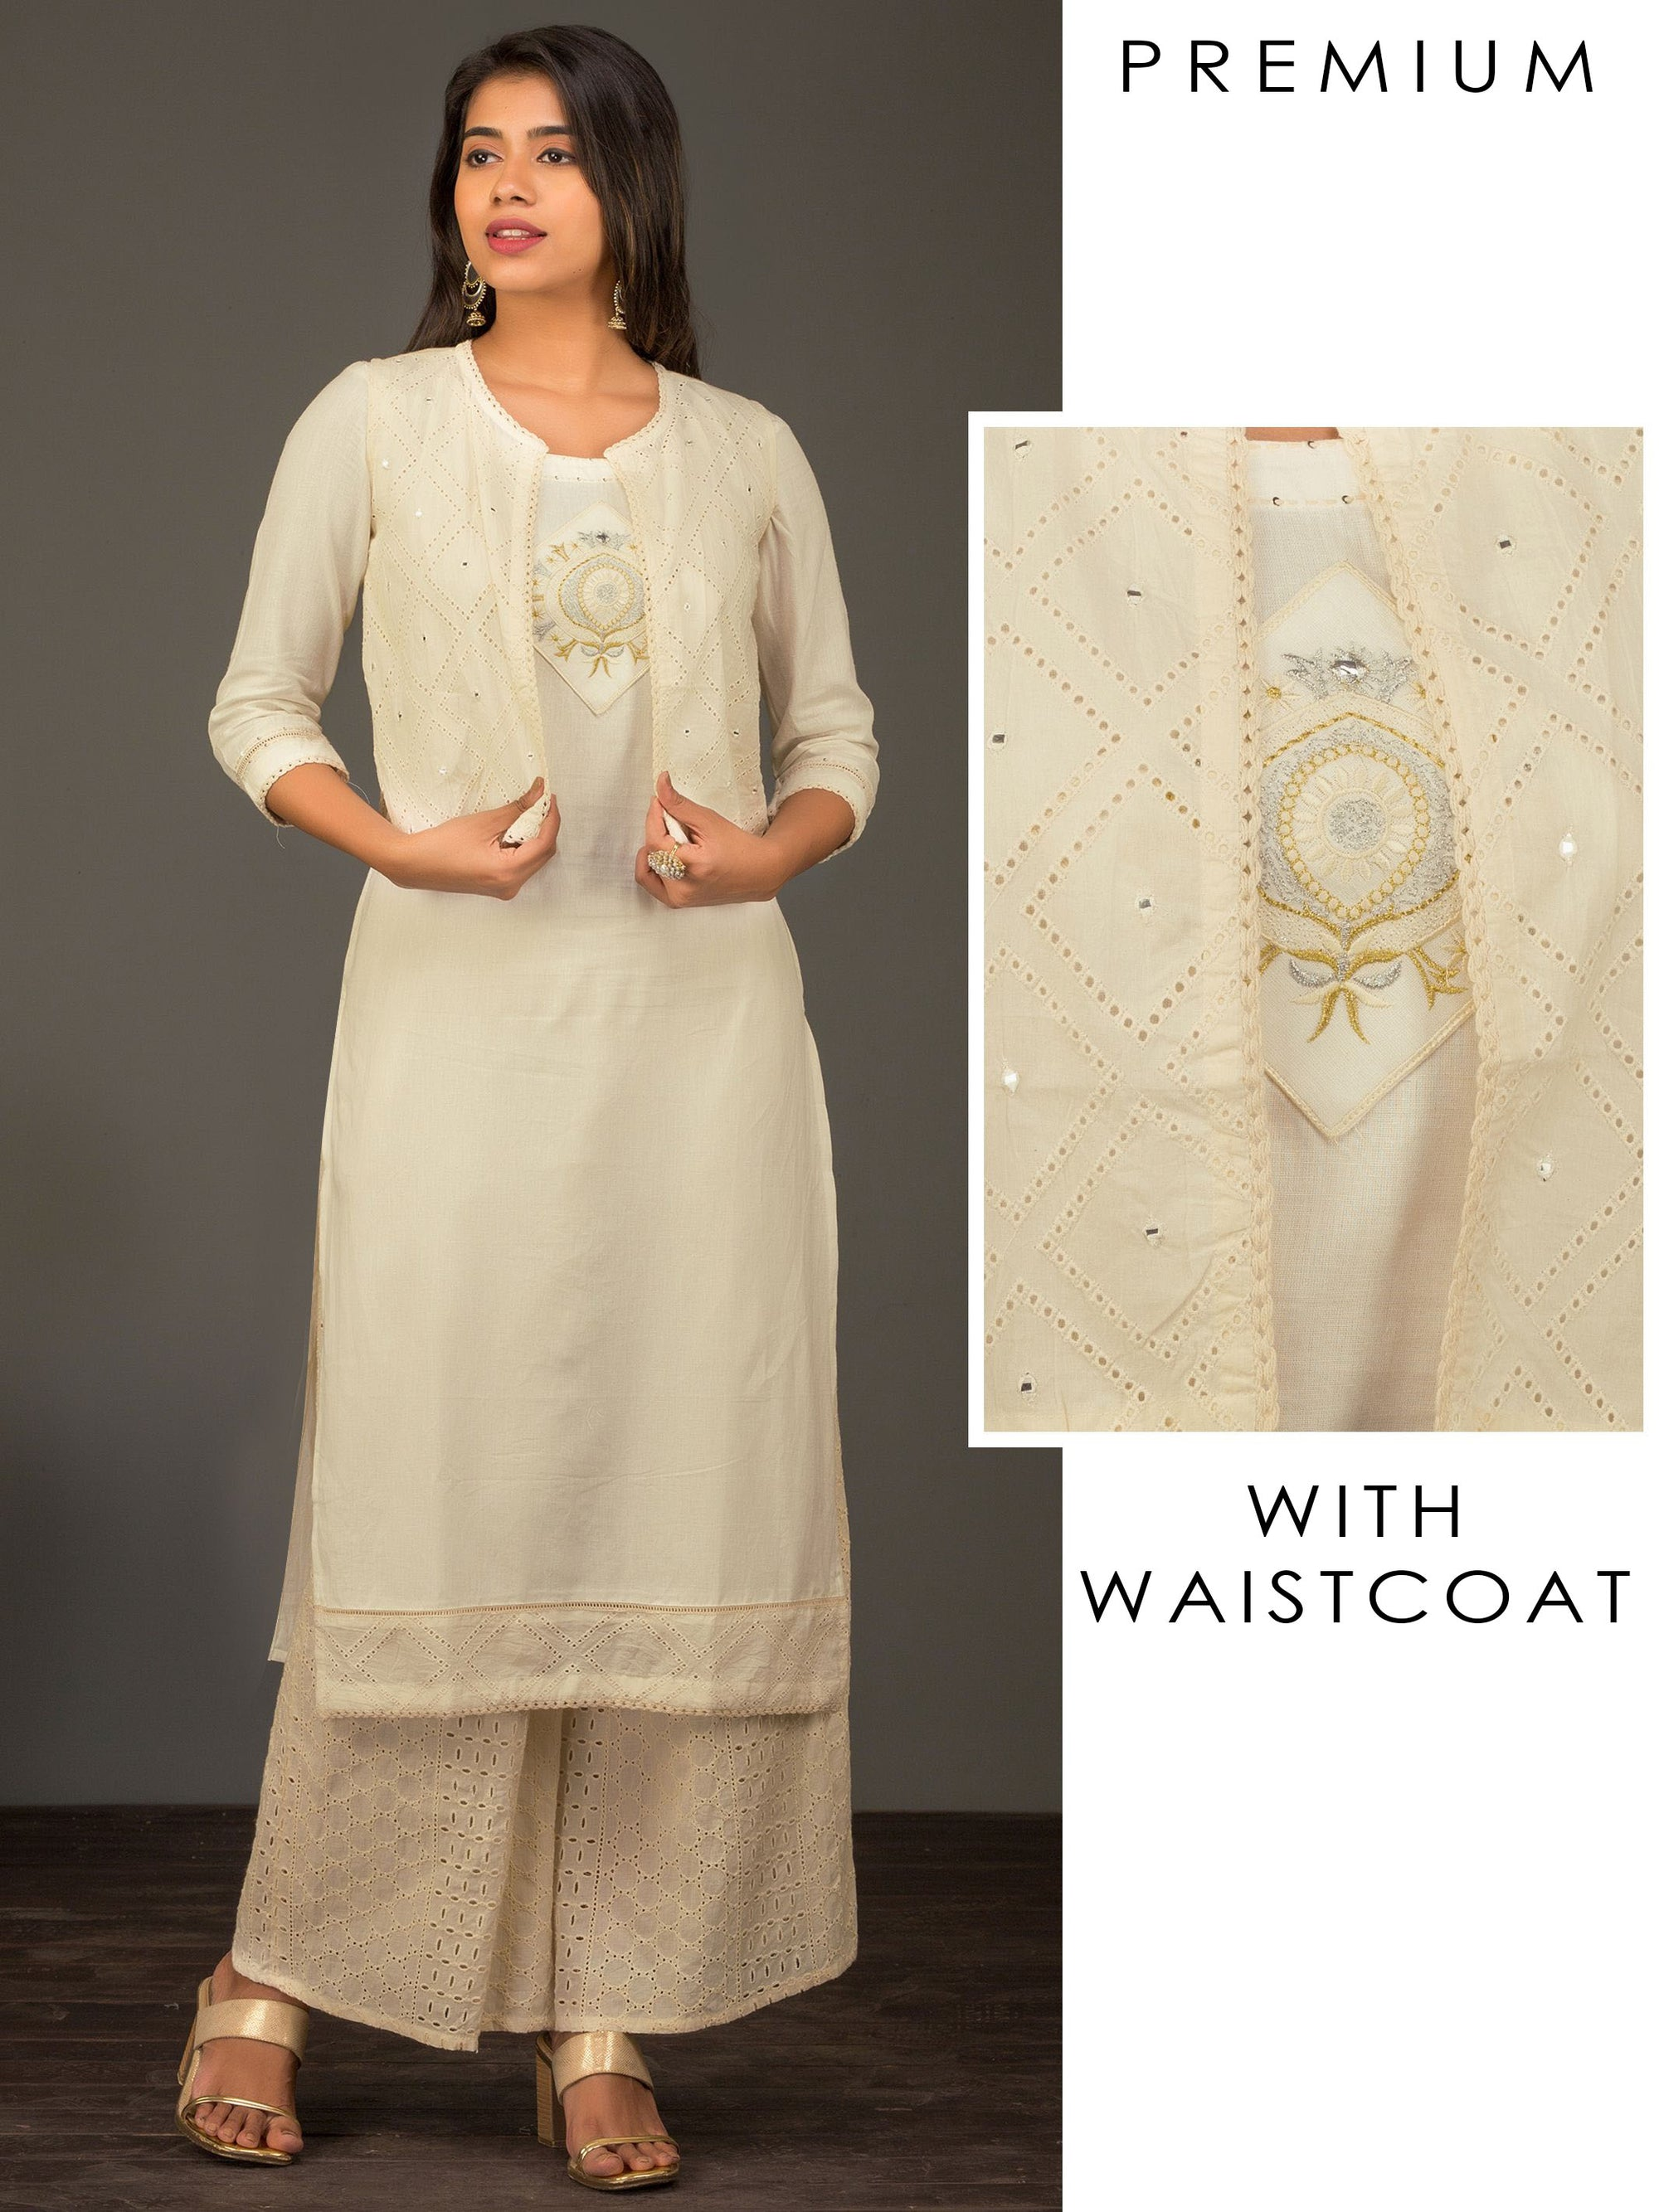 Premium Cotton Zari Embroidered Kurta With Schiffli And Mirrorwork Waistcoat